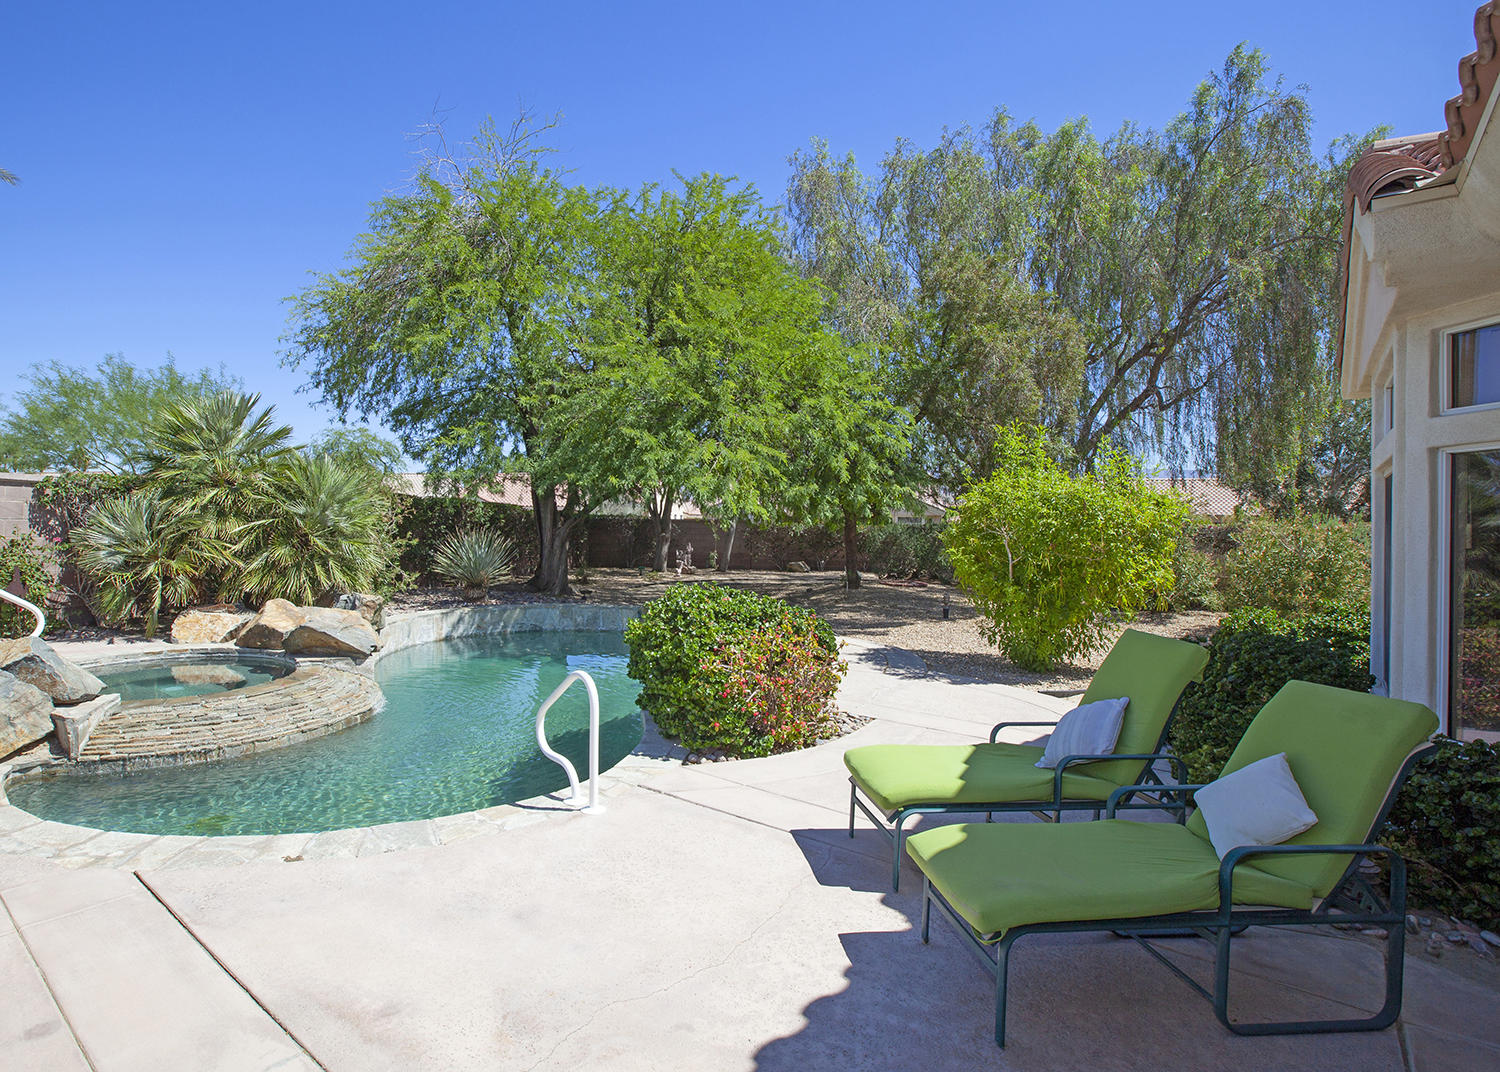 Photo of 78614 Blooming Court, Palm Desert, CA 92211